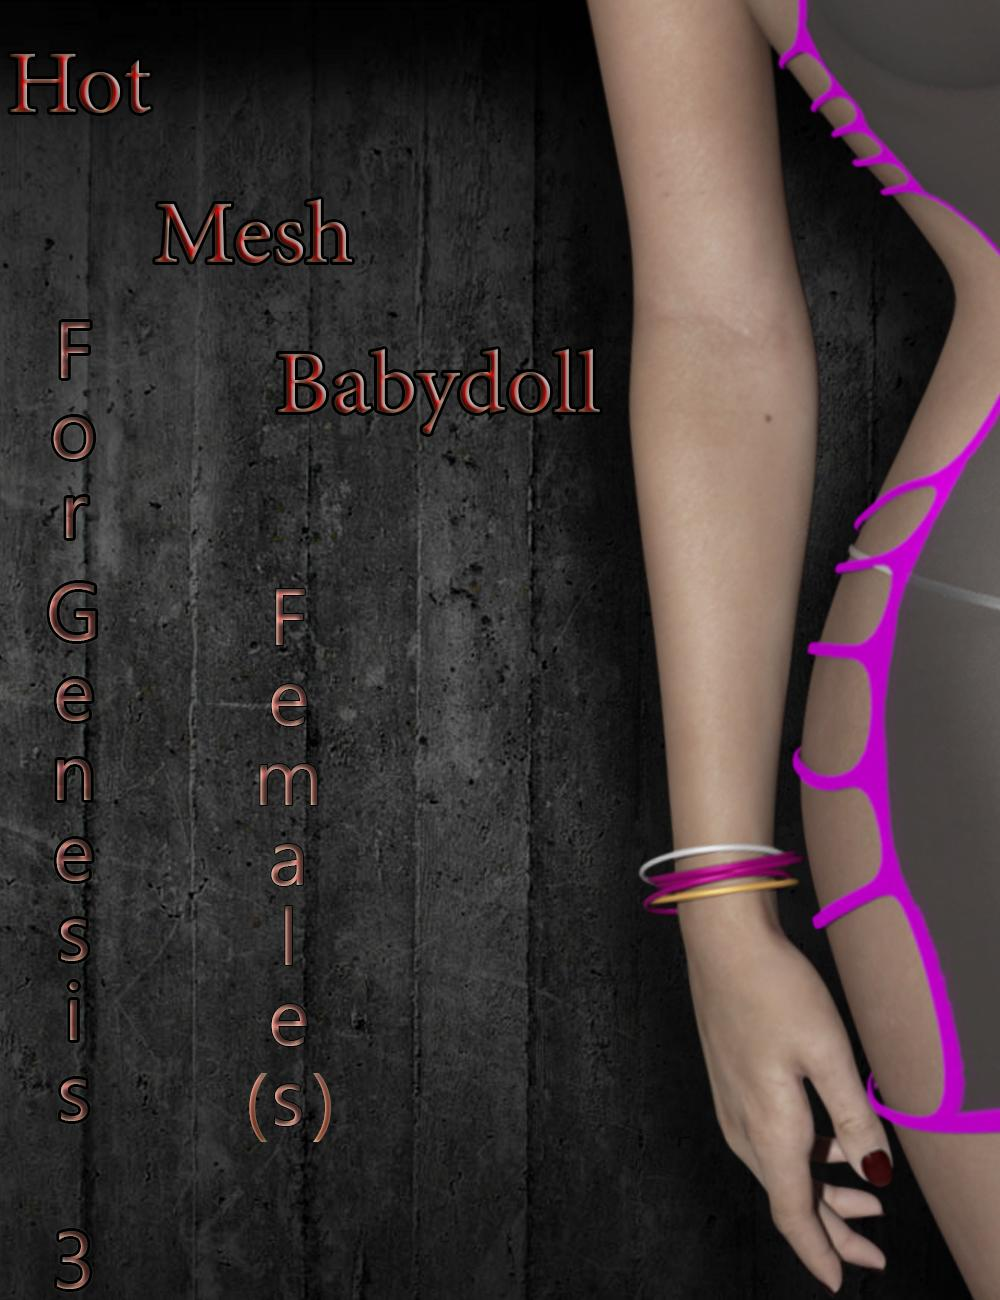 Hot Mesh Babydoll For Genesis 3